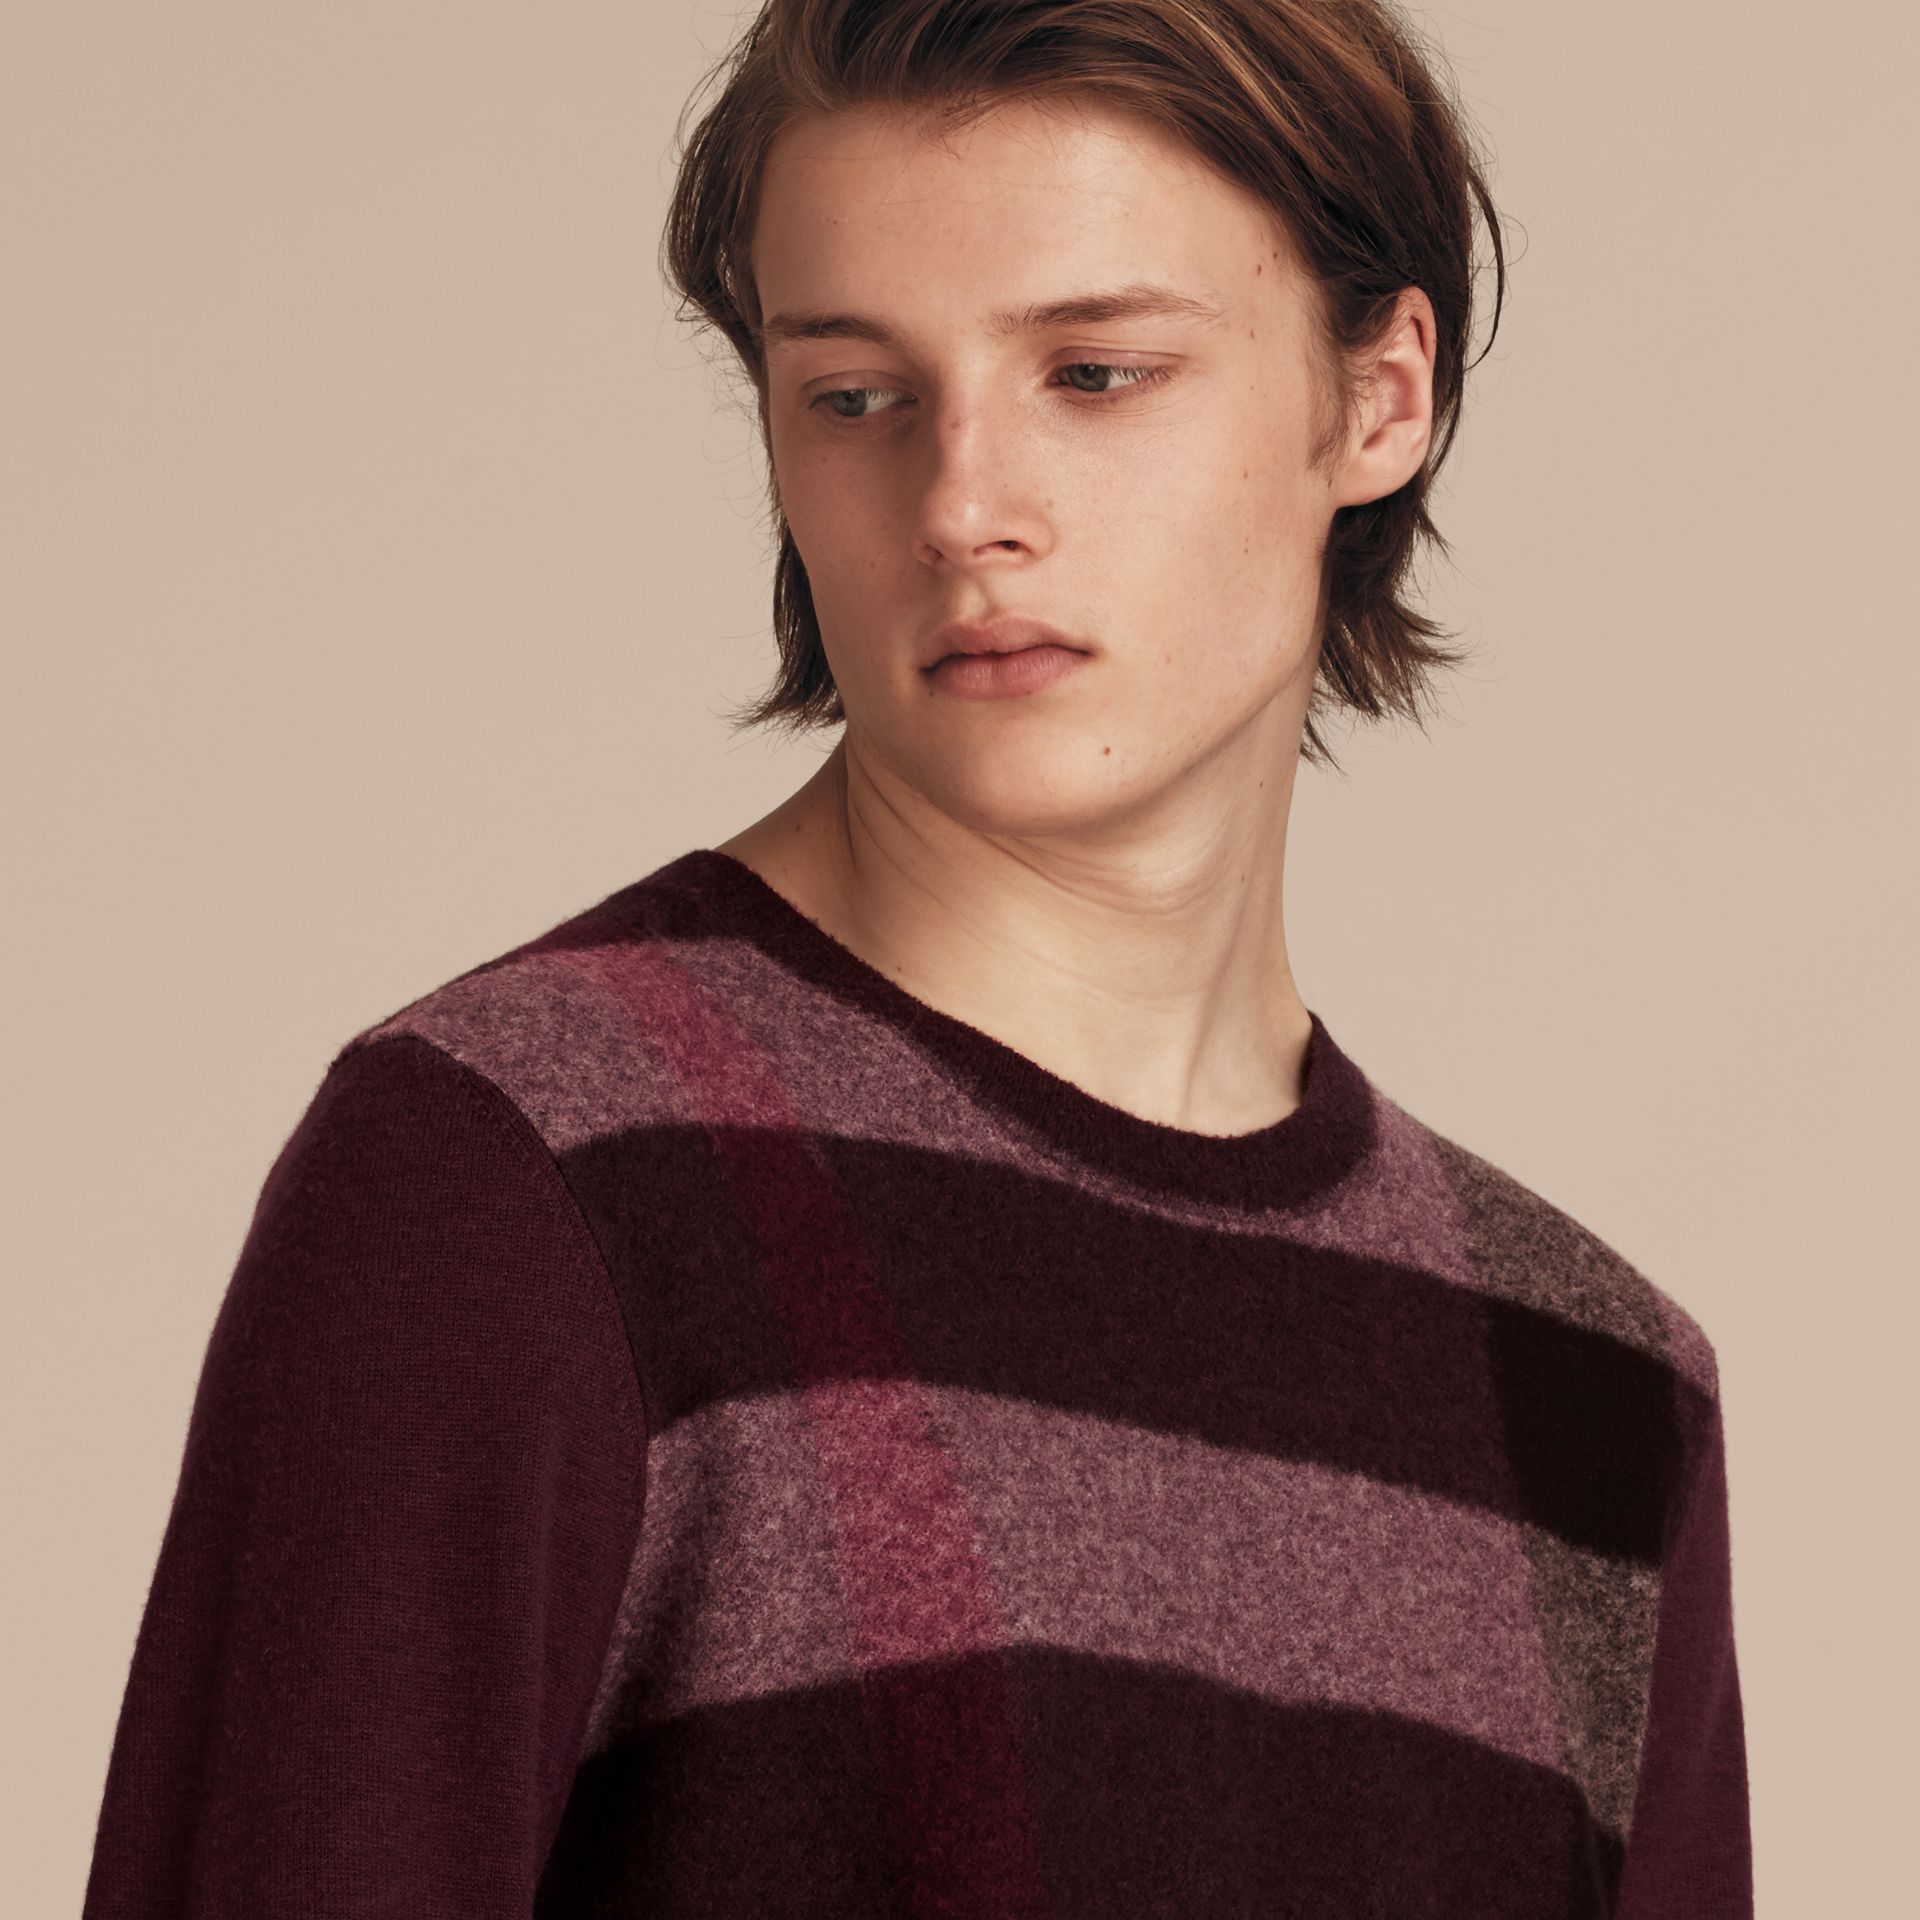 Burgundy red Graphic Check Cashmere Cotton Sweater Burgundy Red - gallery image 5